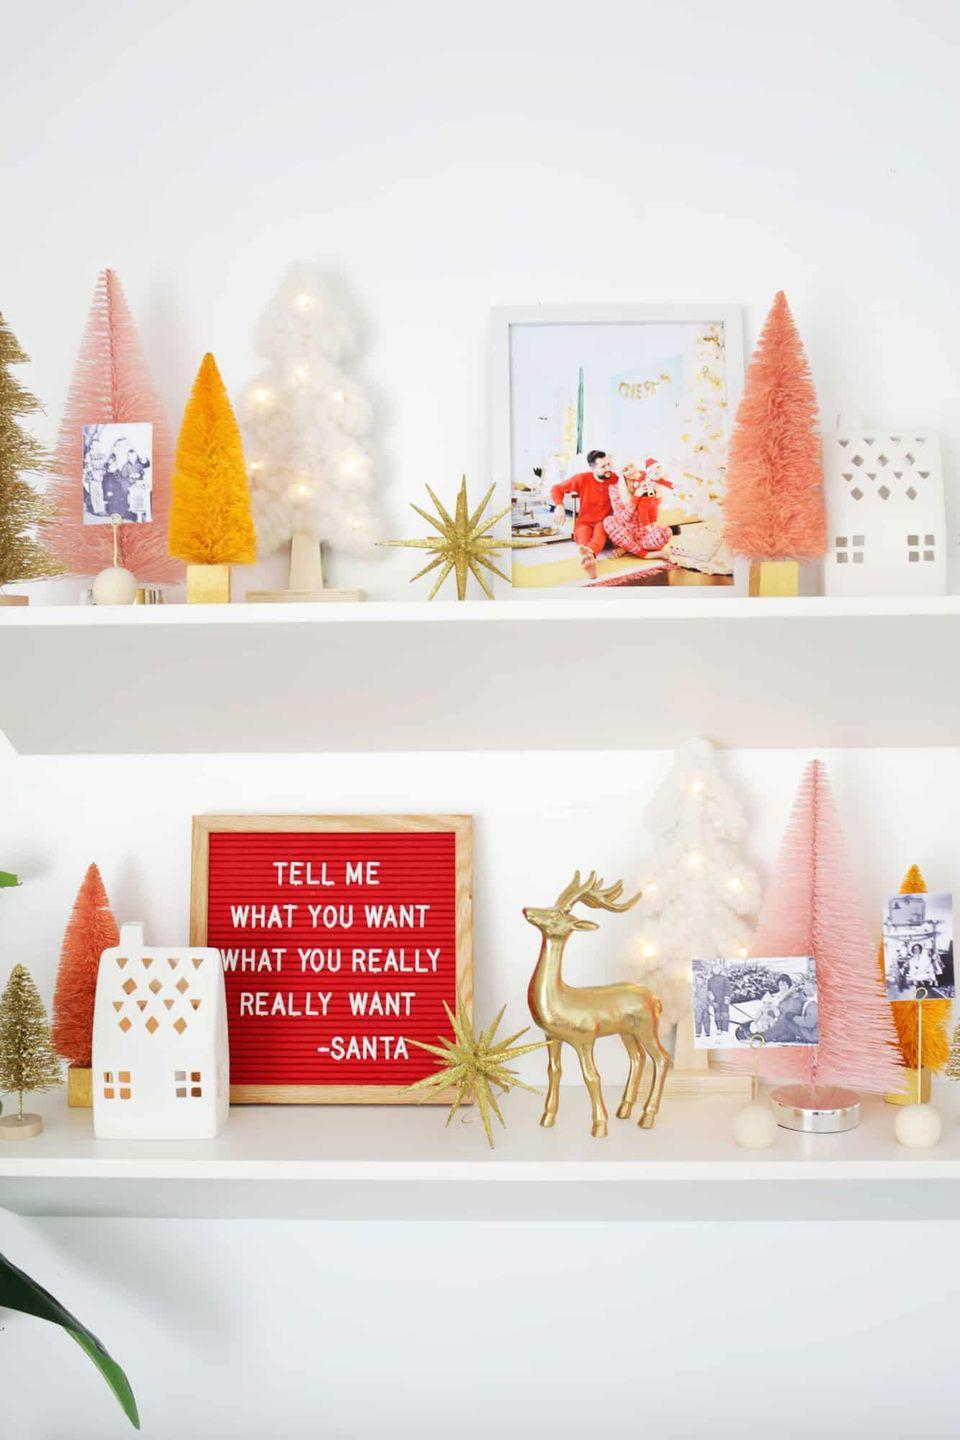 "<p>If you love the idea of changing up your decor as the season progresses, add a colorful letter board into the mix. It's the perfect place for season's greetings, snippets of holiday song lyrics, and more. </p><p><em>See more at <a href=""https://abeautifulmess.com/use-these-5-items-to-create-an-easy-holiday-display/"" rel=""nofollow noopener"" target=""_blank"" data-ylk=""slk:A Beautiful Mess"" class=""link rapid-noclick-resp"">A Beautiful Mess</a>.</em></p><p><a class=""link rapid-noclick-resp"" href=""https://www.amazon.com/Felt-Inches-Changeable-Include-Plastic/dp/B07K1FBN7Y?tag=syn-yahoo-20&ascsubtag=%5Bartid%7C10072.g.34484299%5Bsrc%7Cyahoo-us"" rel=""nofollow noopener"" target=""_blank"" data-ylk=""slk:SHOP LETTER BOARD"">SHOP LETTER BOARD</a></p>"